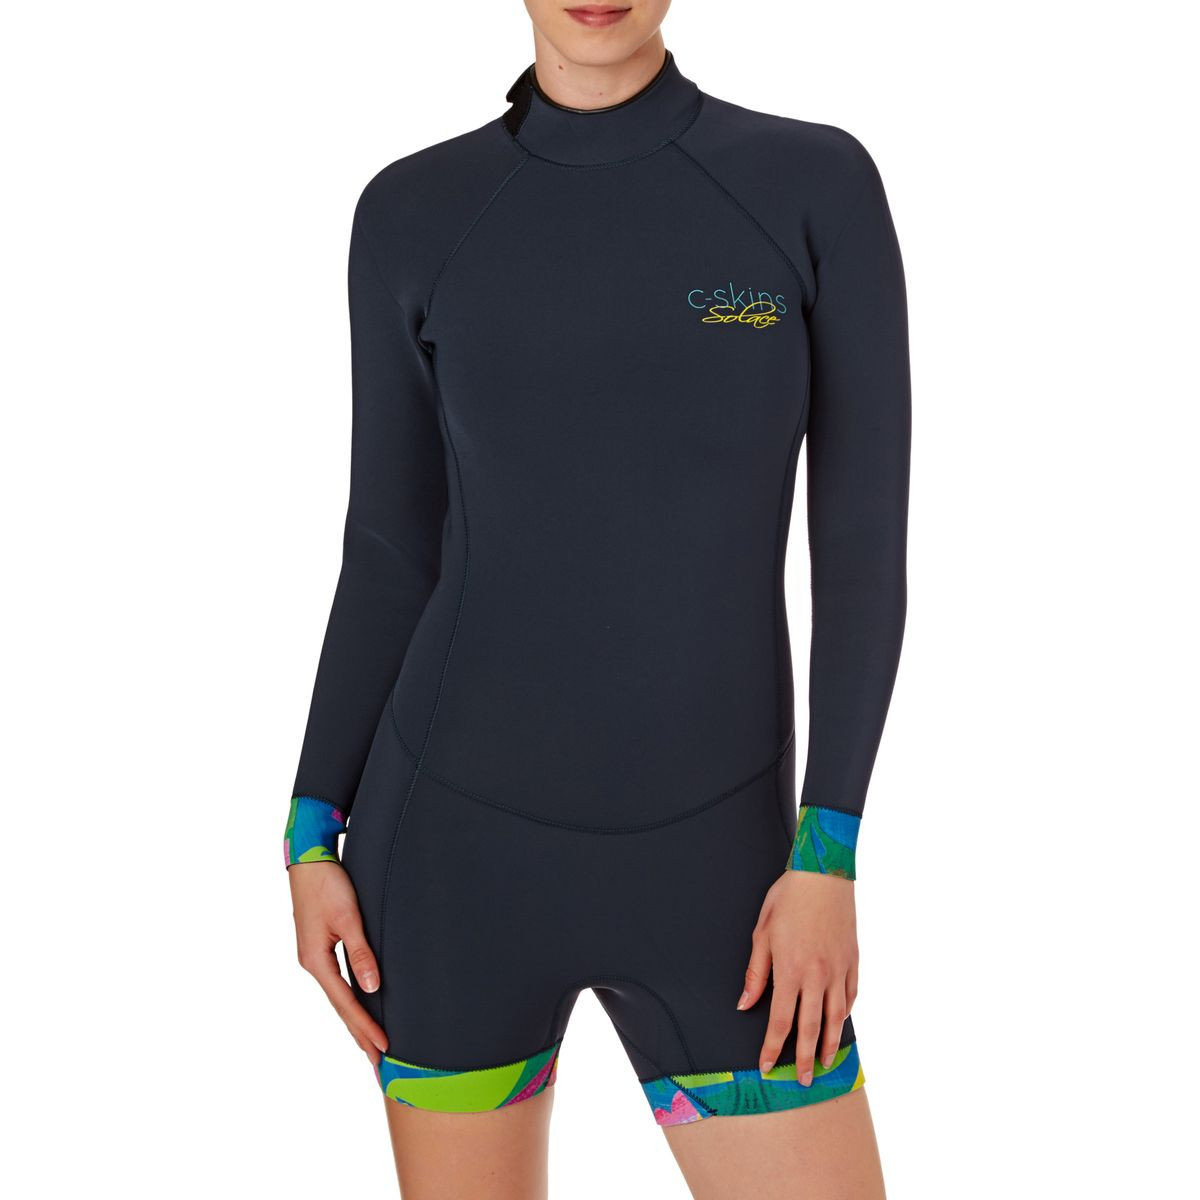 C-Skins Womens Solace 2mm 2017 Back Zip Long Sleeve Boyleg Shorty Wetsuit - Blue Black/ Tropic Trees